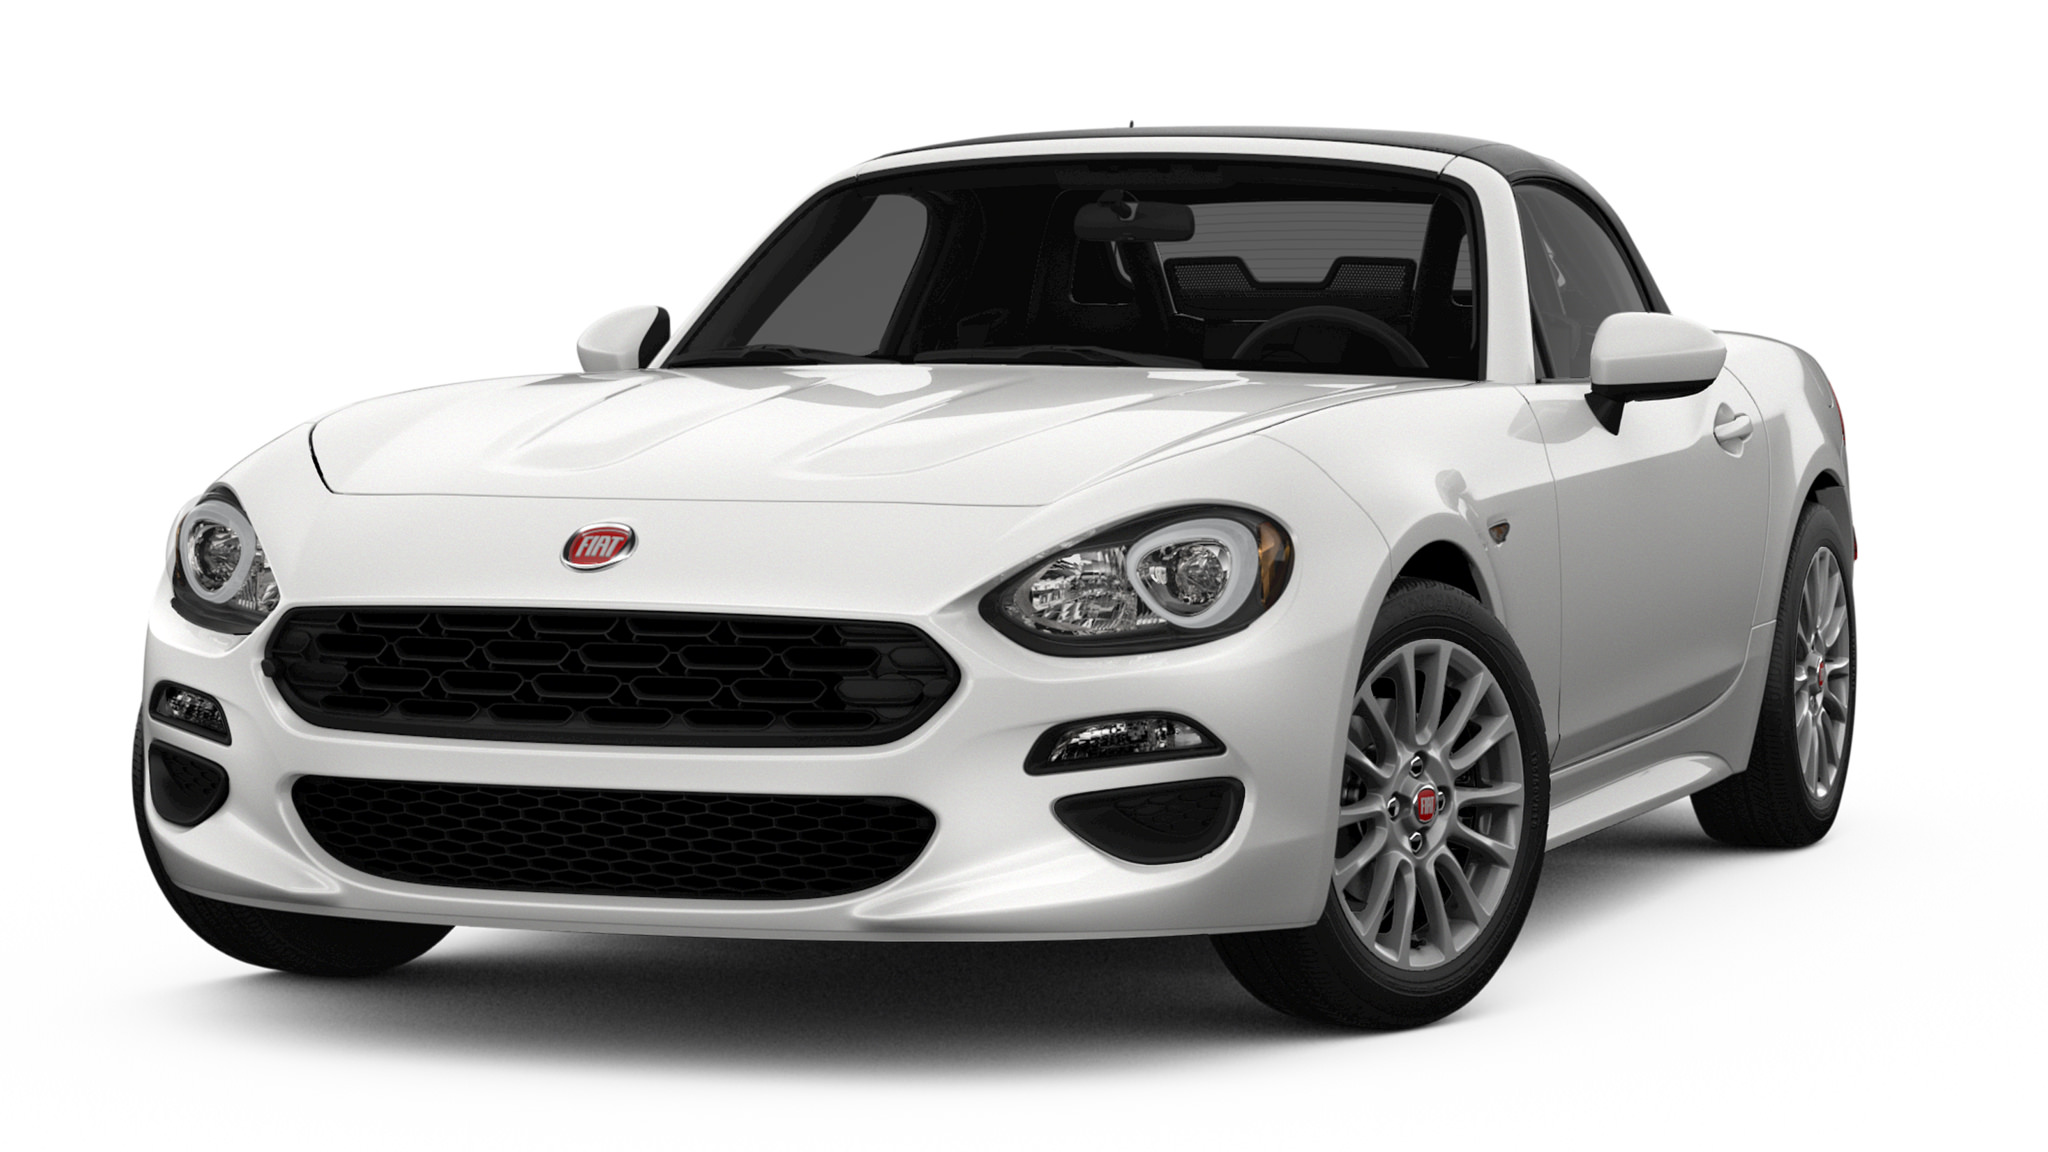 2018 fiat 124 spider earns best buy award the news wheel. Black Bedroom Furniture Sets. Home Design Ideas